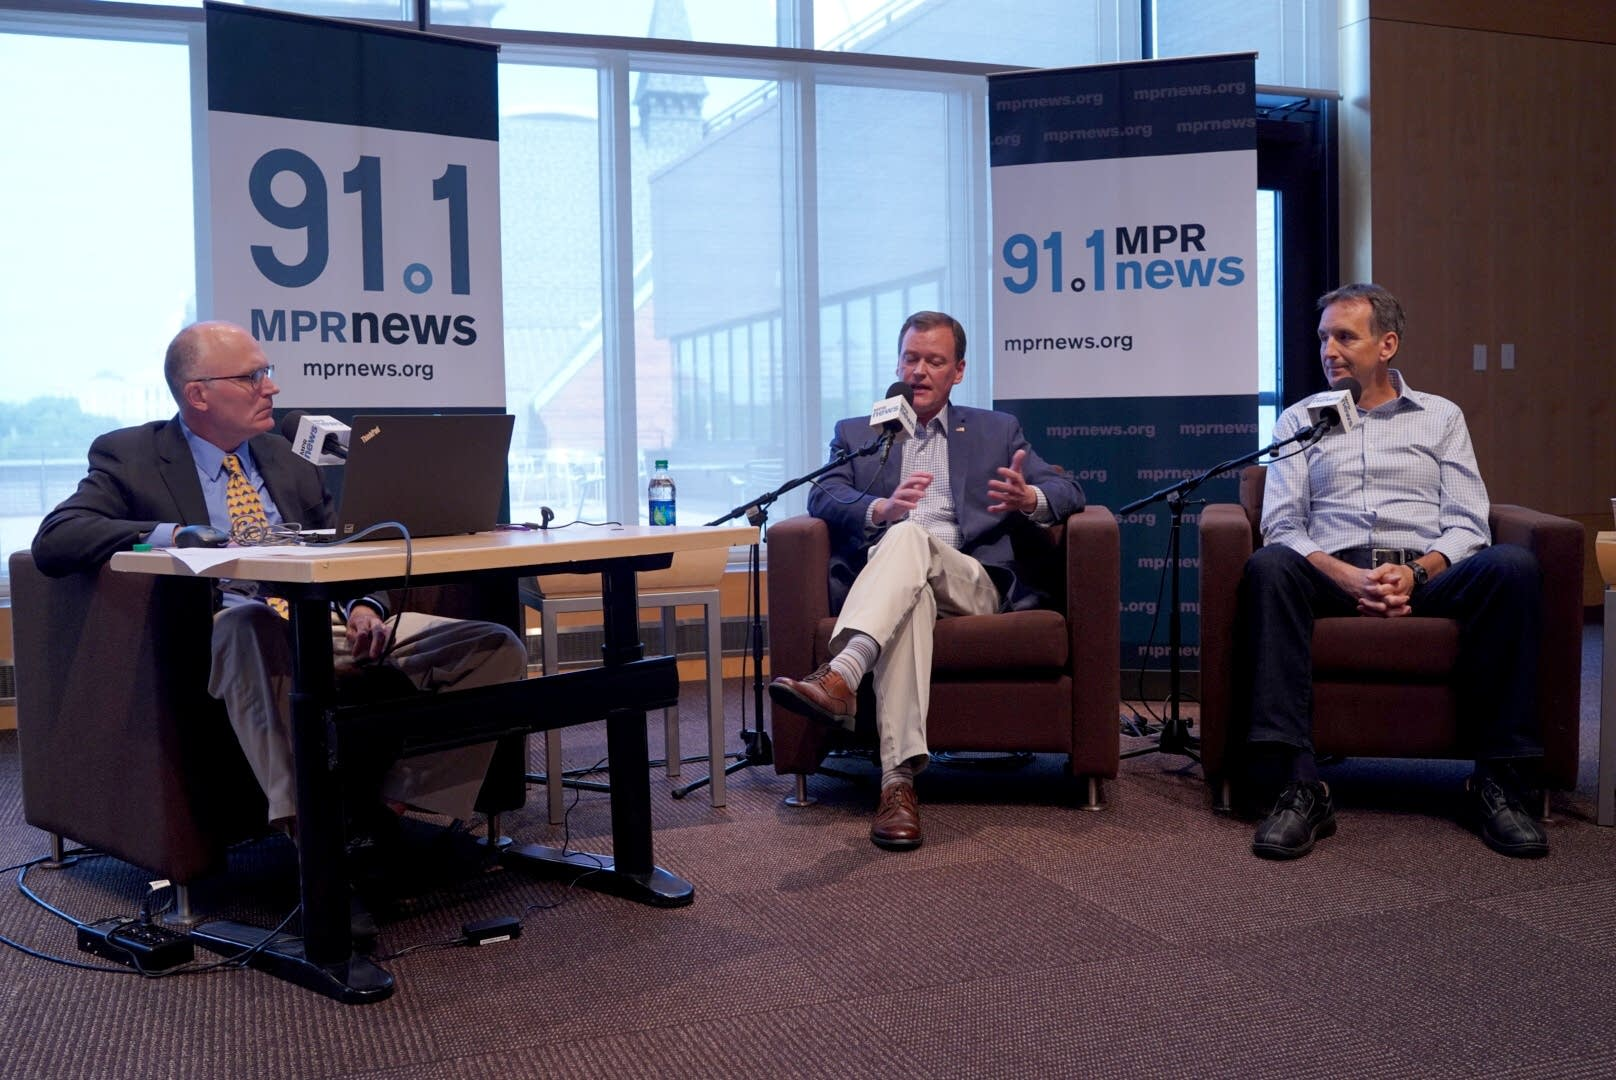 Mike Mulcahy, Jeff Johnson and Tim Pawlenty